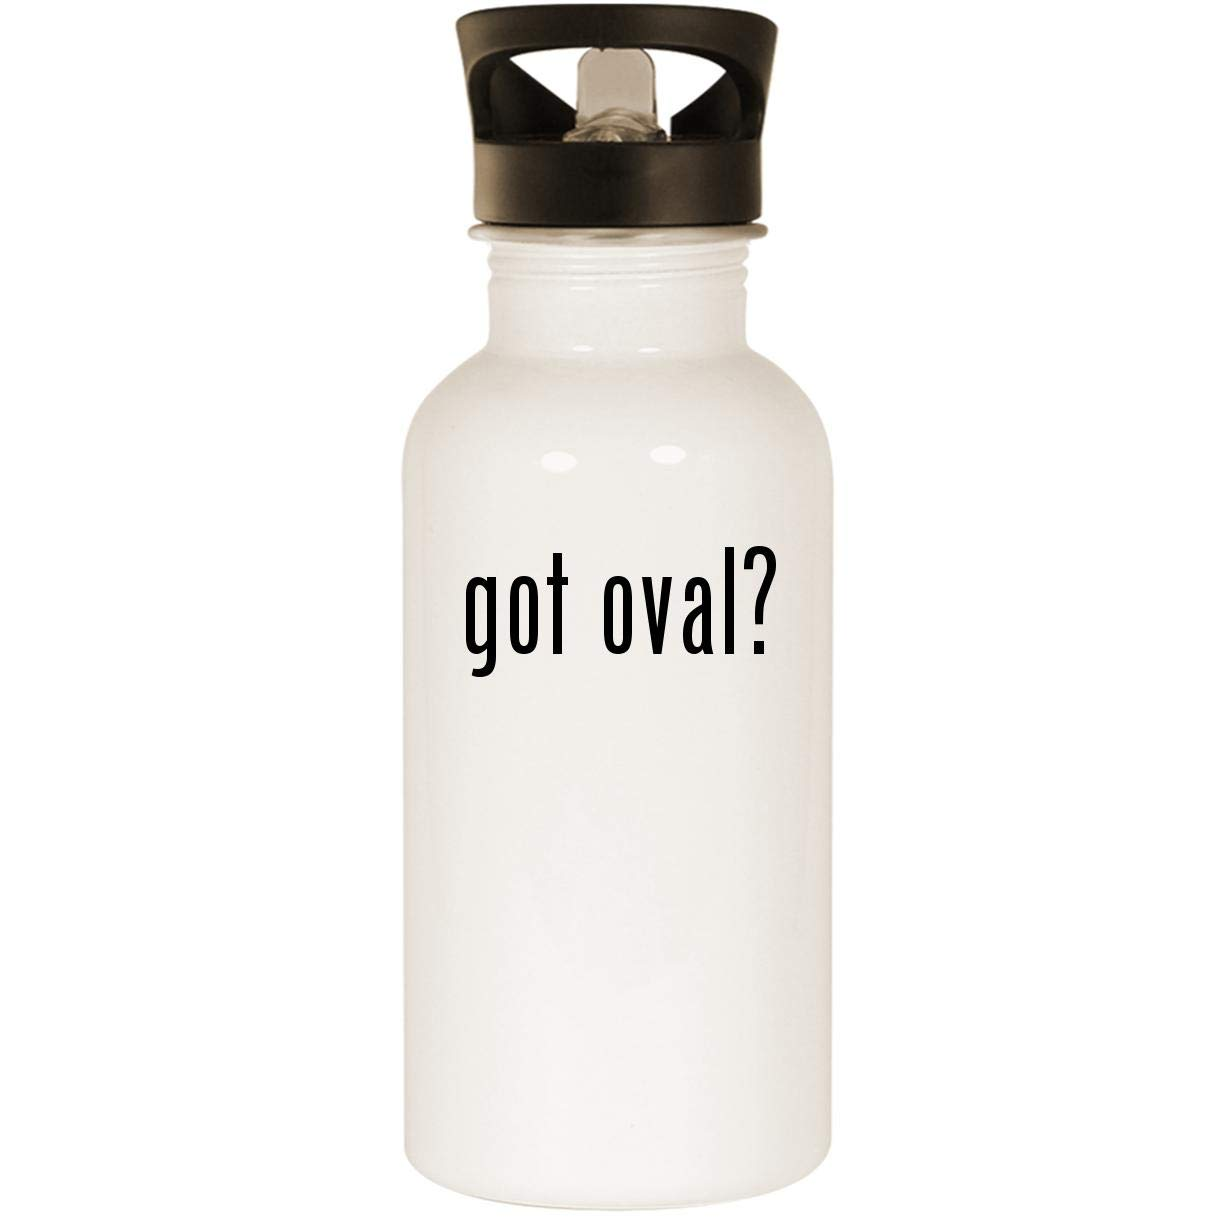 got oval? - Stainless Steel 20oz Road Ready Water Bottle, White